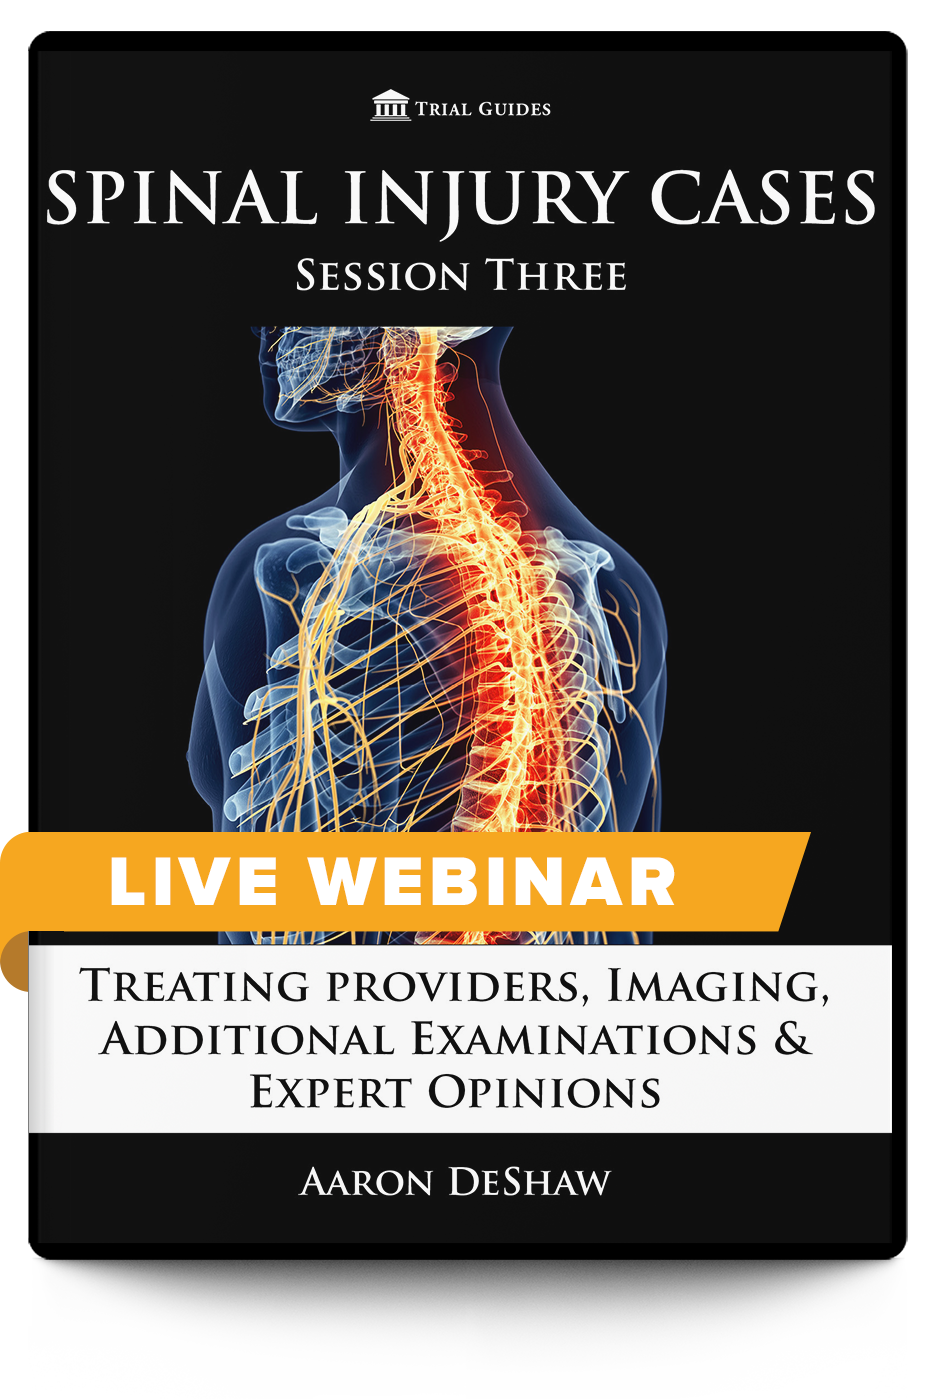 Spinal Injury Cases, Session Three: Treating Providers, Imaging, Additional Examinations & Expert Opinions - Live Webinar